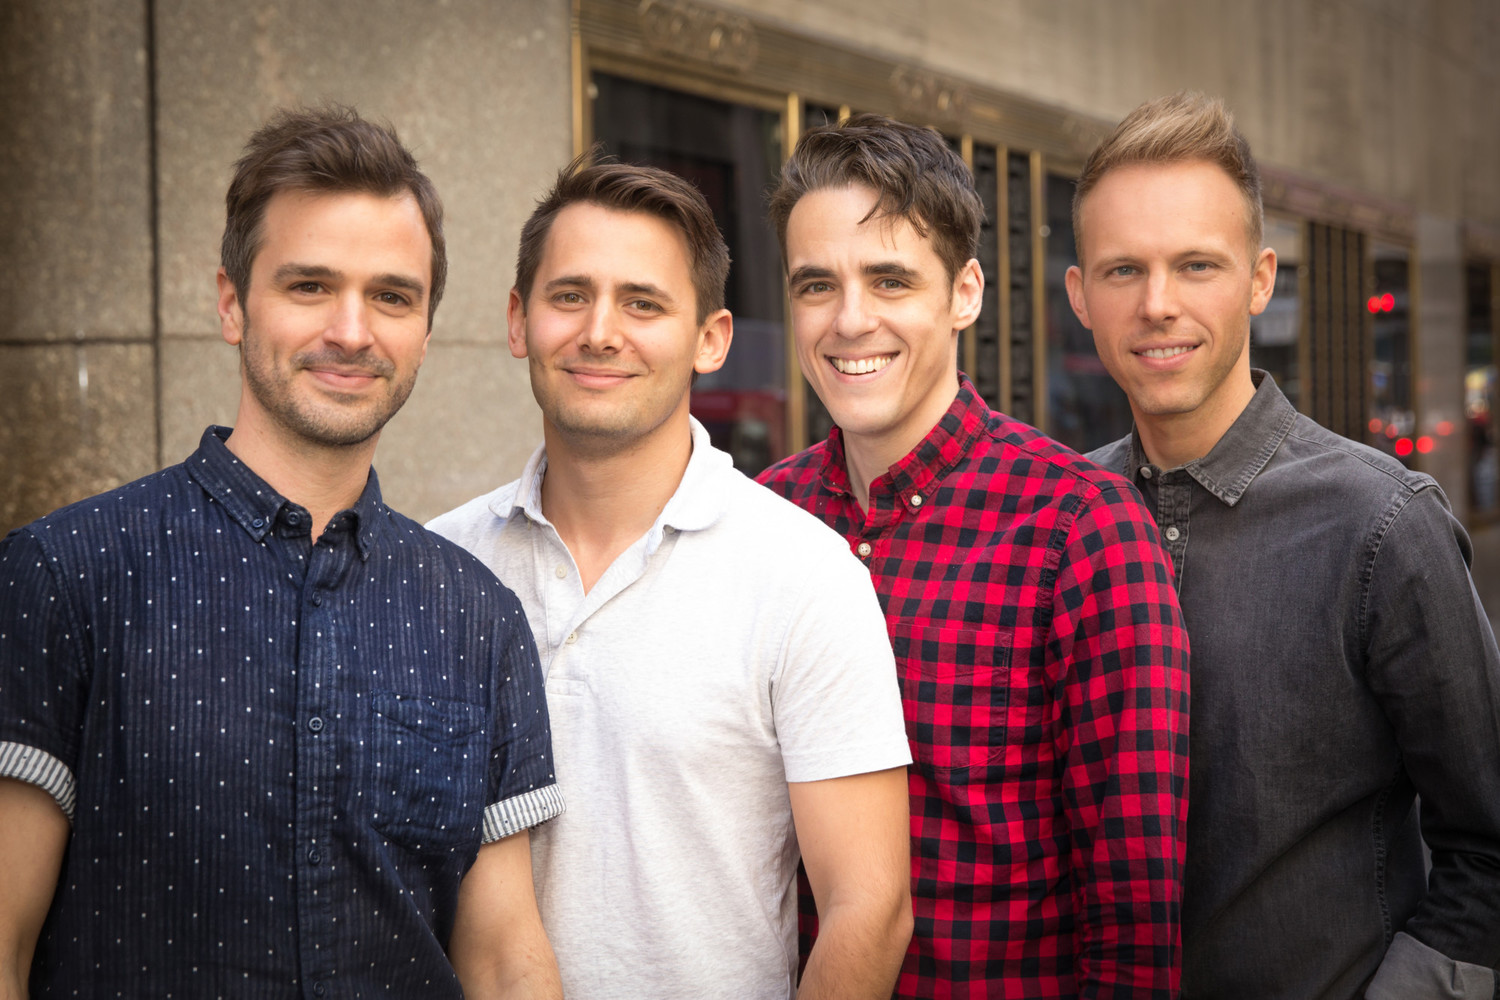 BWW Interview: DEAR EVAN HANSEN Becomes a Book, and Before Their Promotional Stop in Salt Lake City, Its Creators Discuss the Adaptation Process